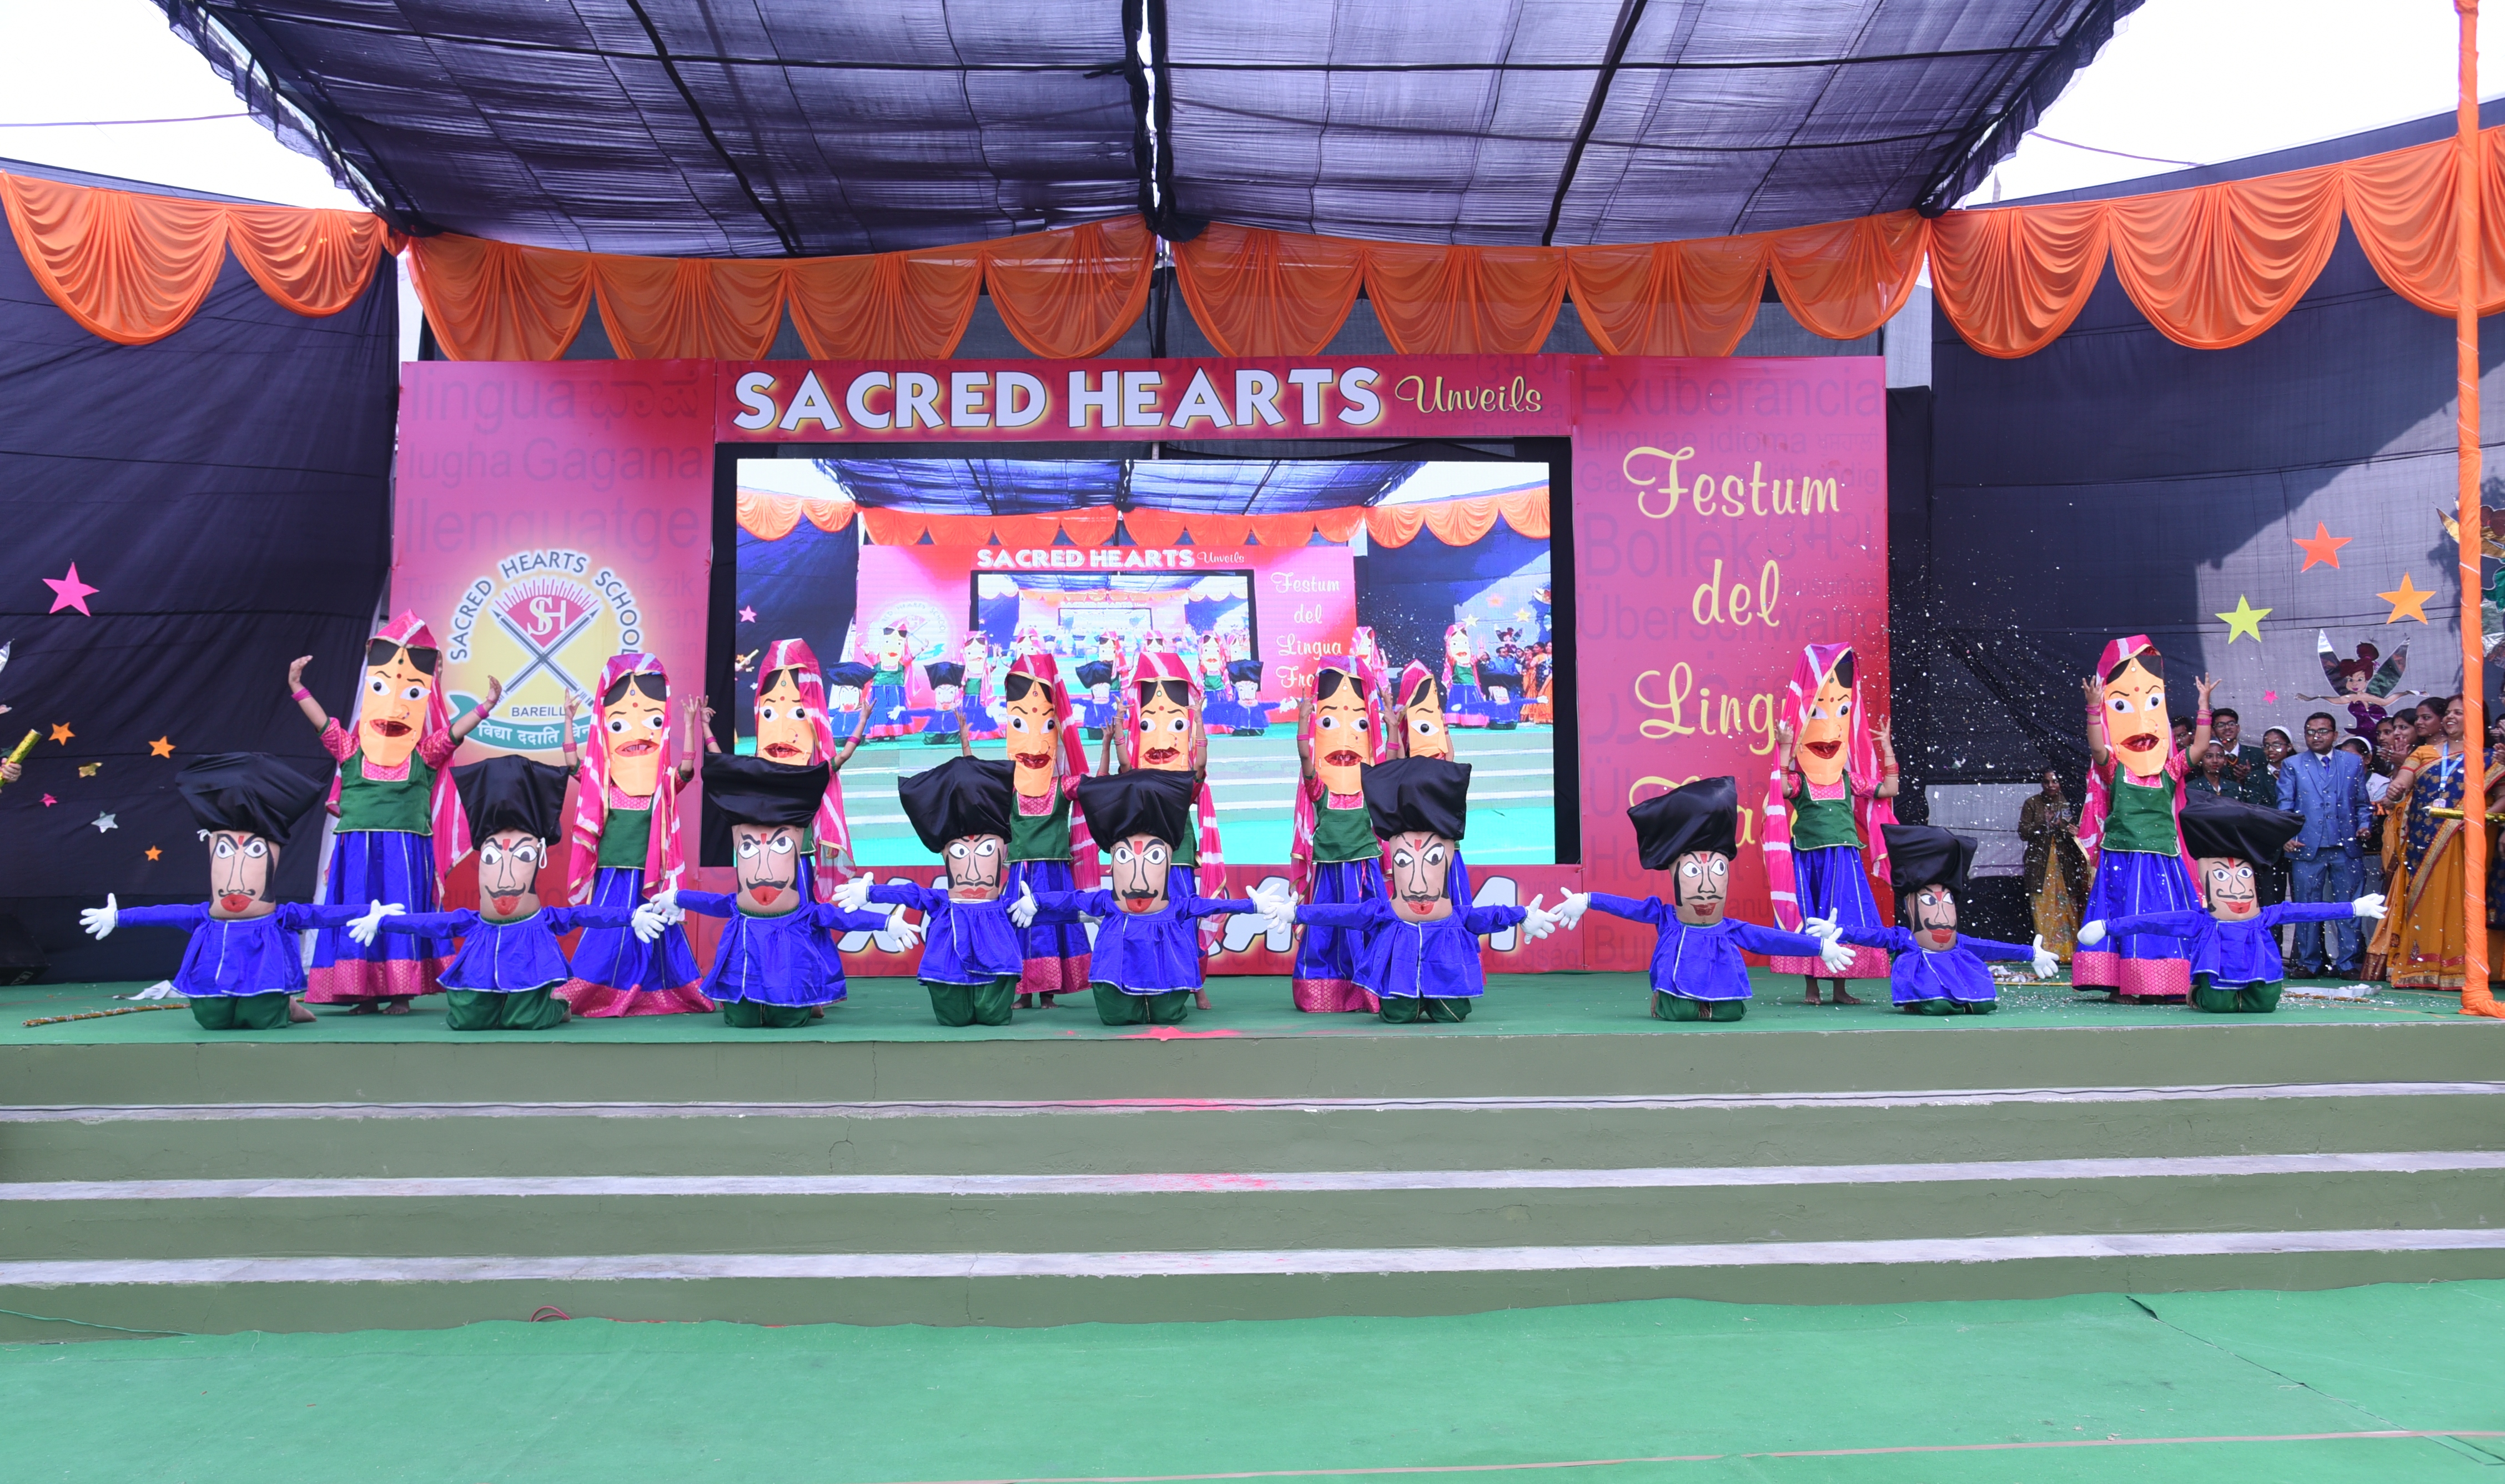 Sacred Hearts Annual Fete was a wonderful day filled with much laughter, fun and community spirit building activities. The rides, games, food arena, dancing and live entertainment were all extremely successful.